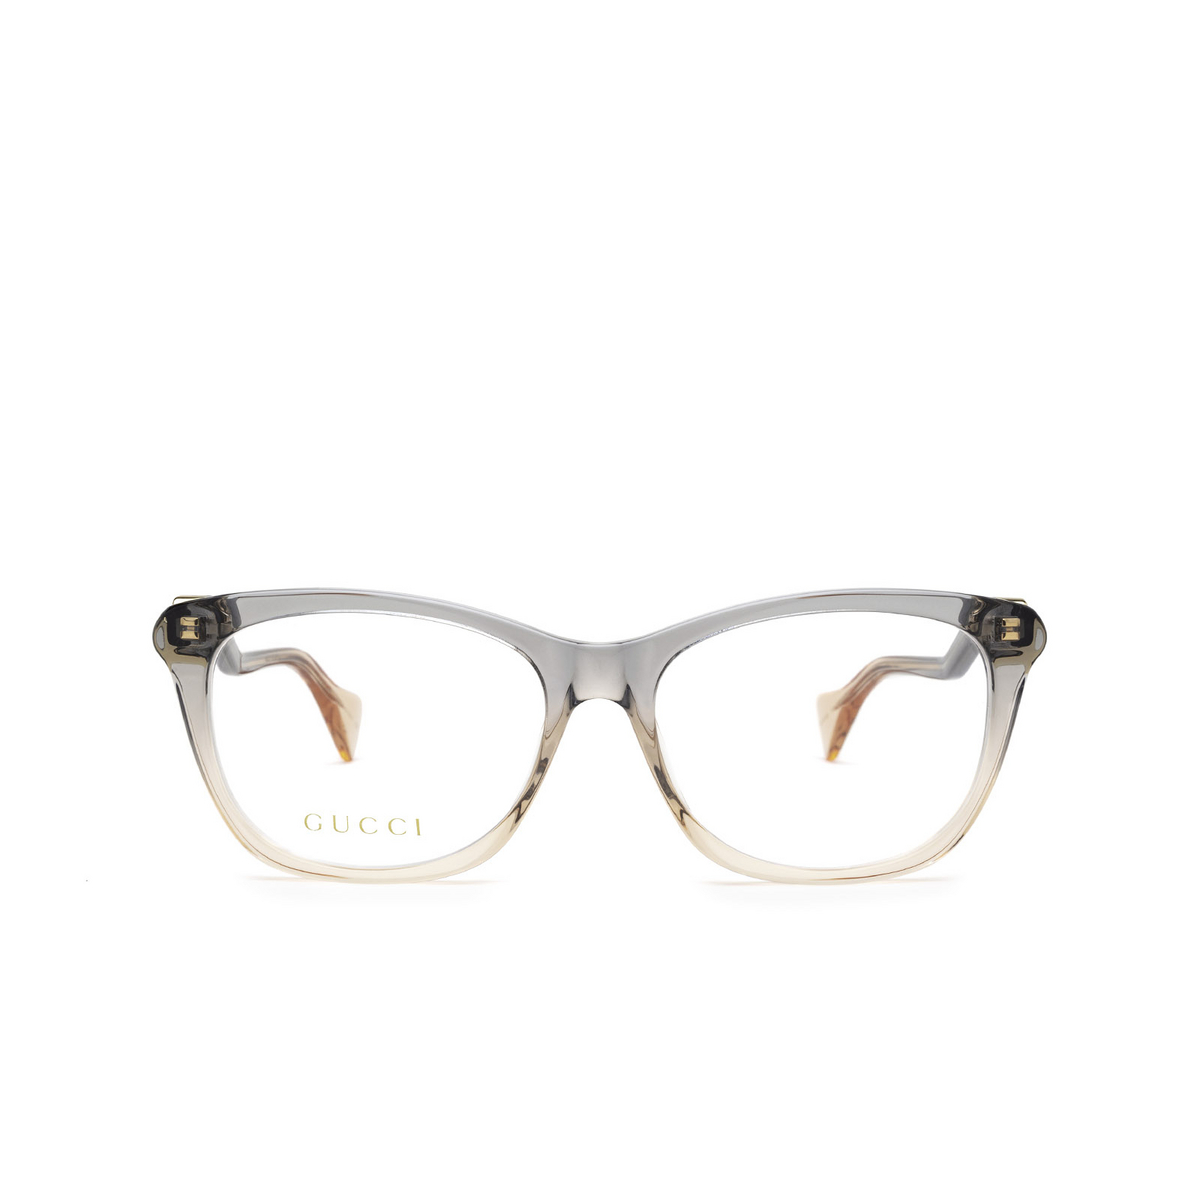 Gucci® Cat-eye Eyeglasses: GG1012O color Blue & Nude Pink 002 - front view.